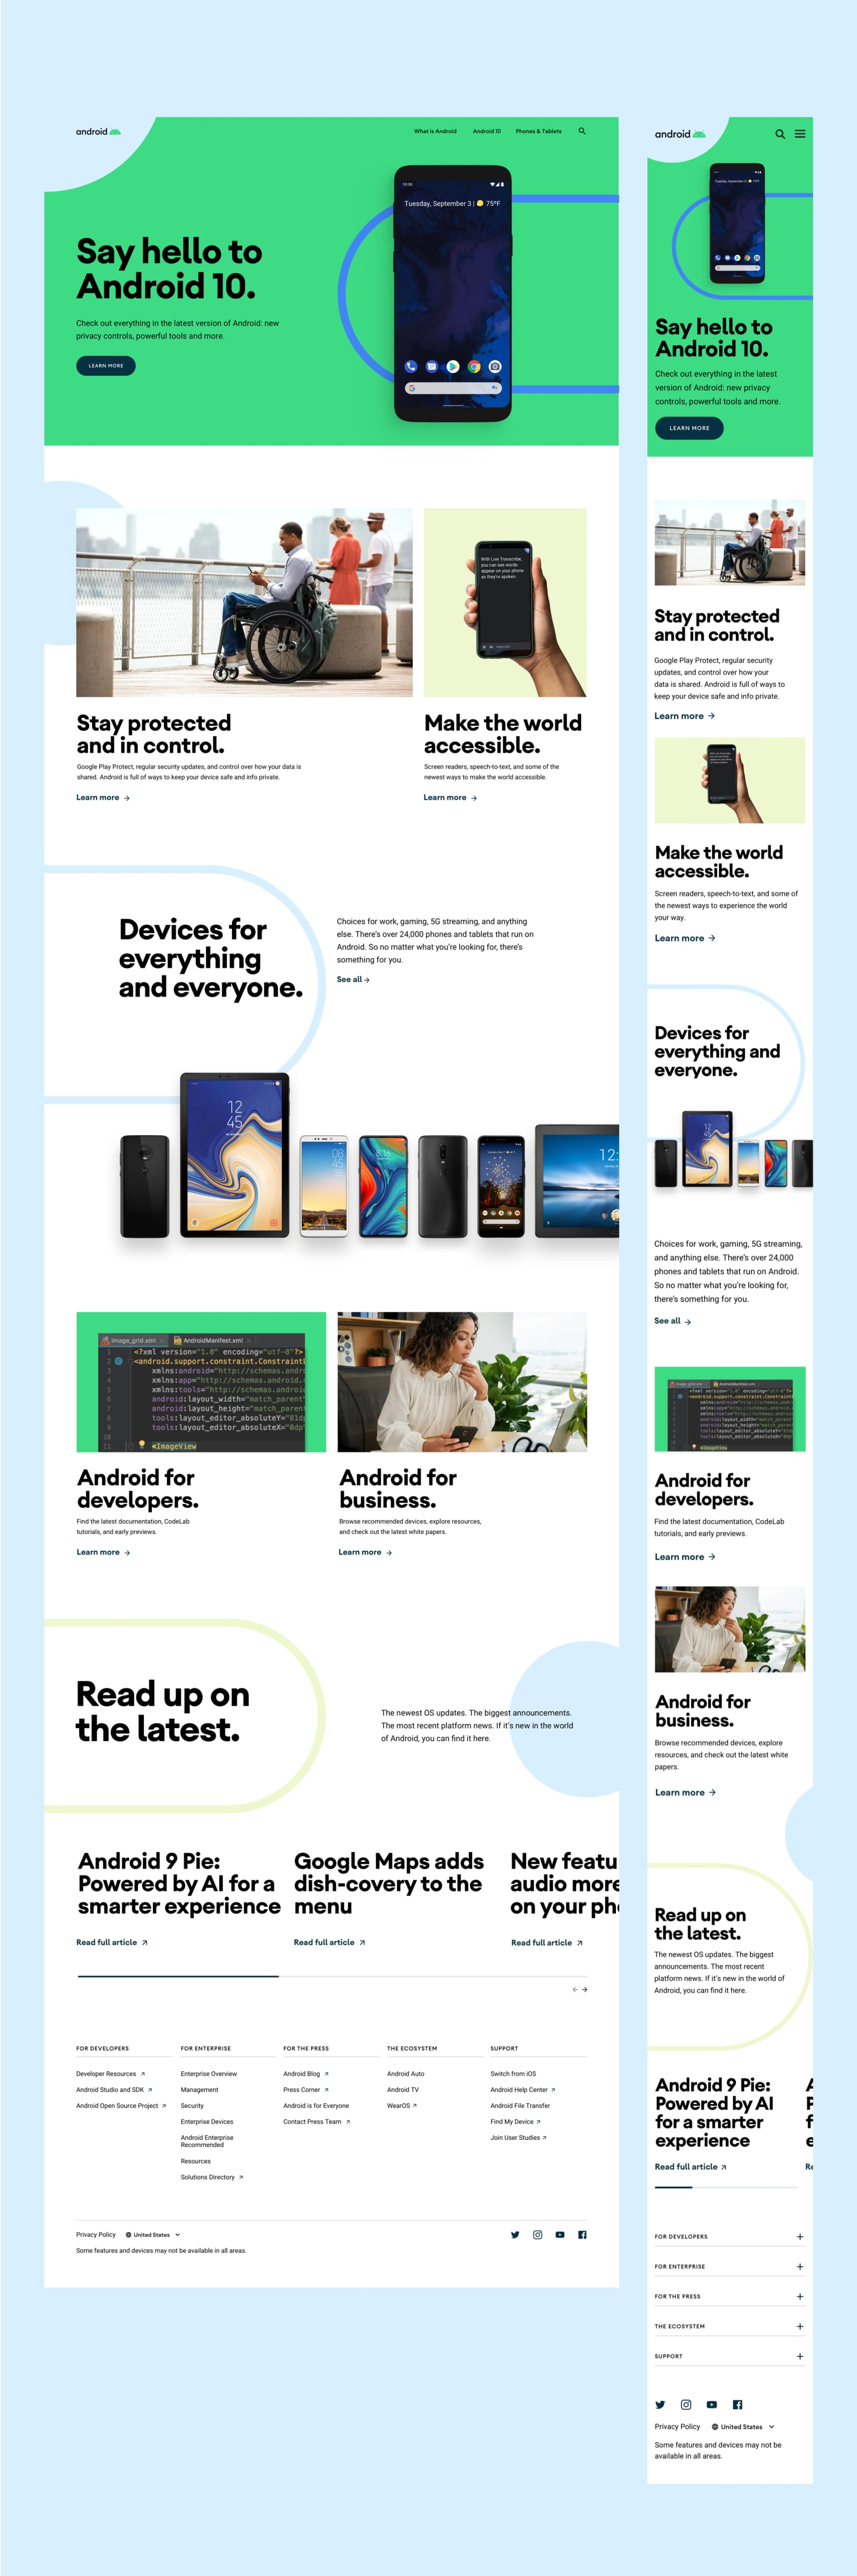 Android.com Homepage Redesign